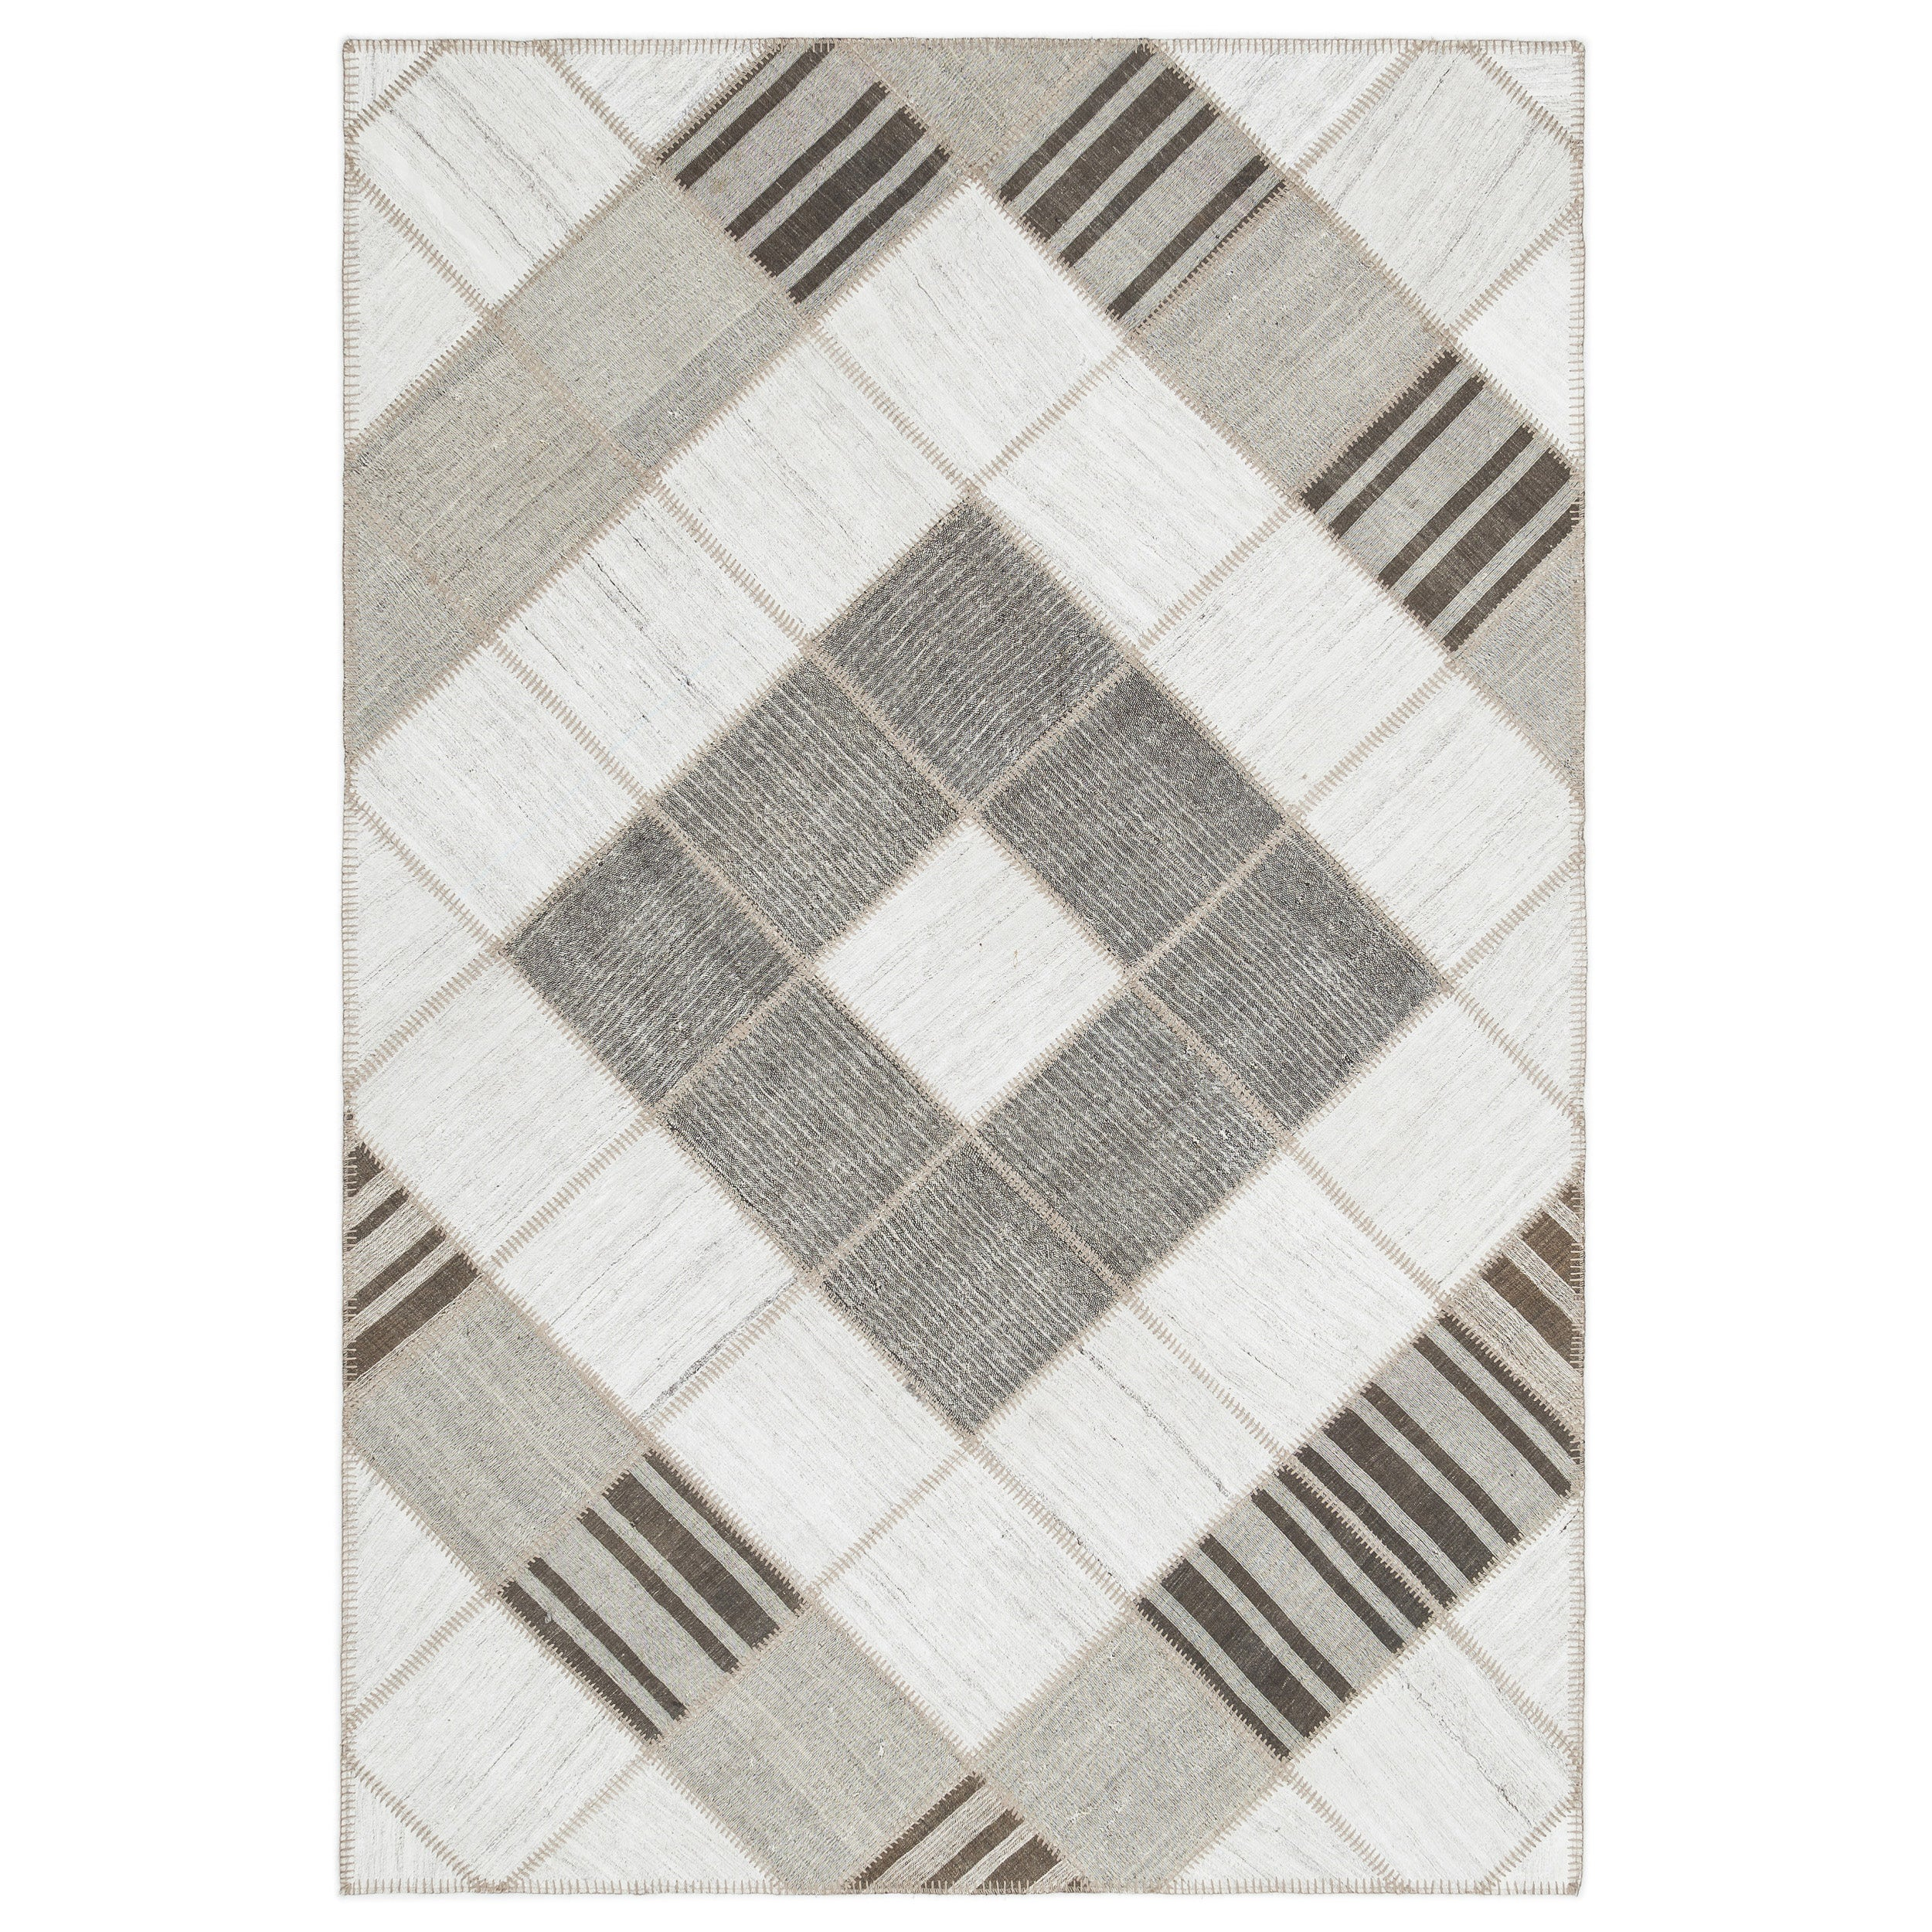 Striped Kilim Patchwork Rug